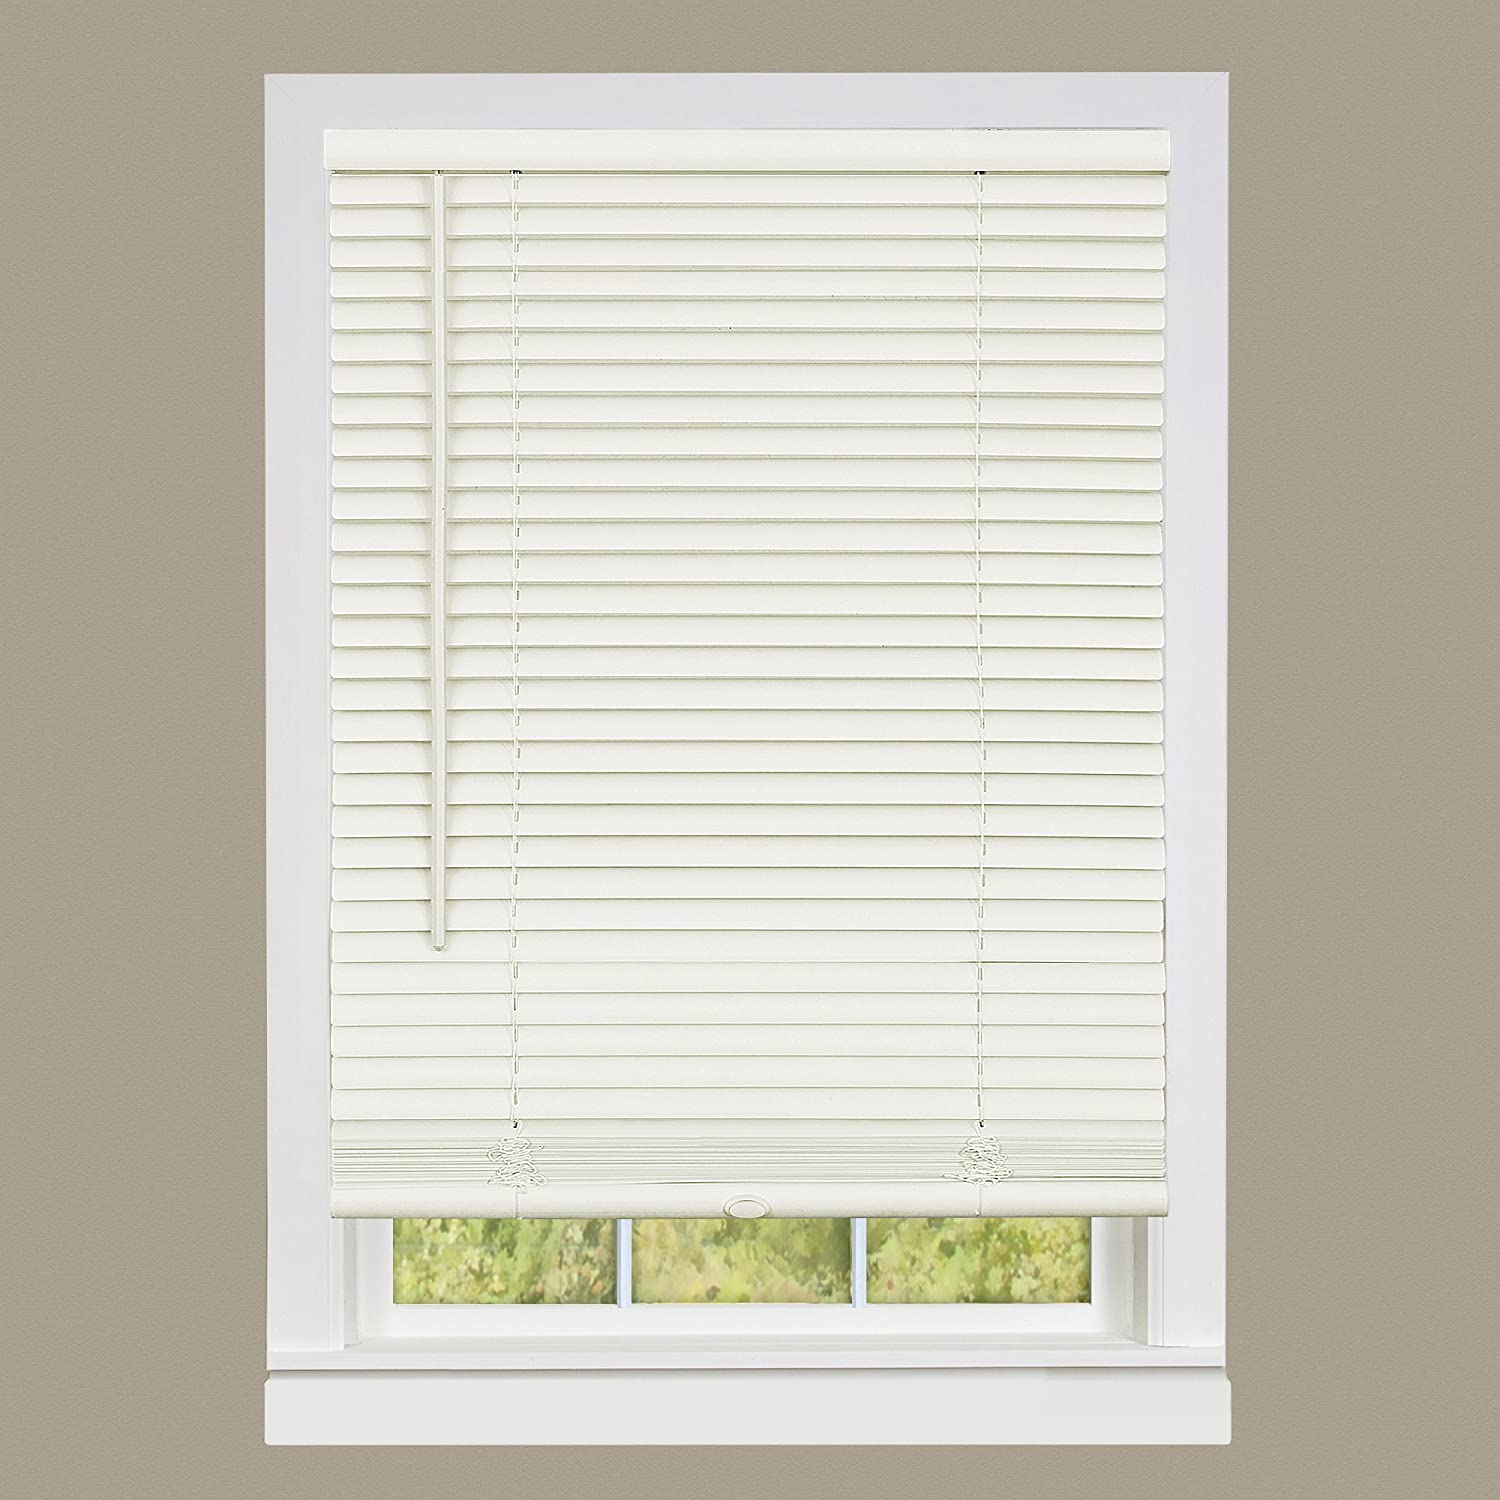 "Achim Home Furnishings DSG229AL06 Deluxe Sundown G2 Cordless Blinds, 29"" x 64"", Alabaster"